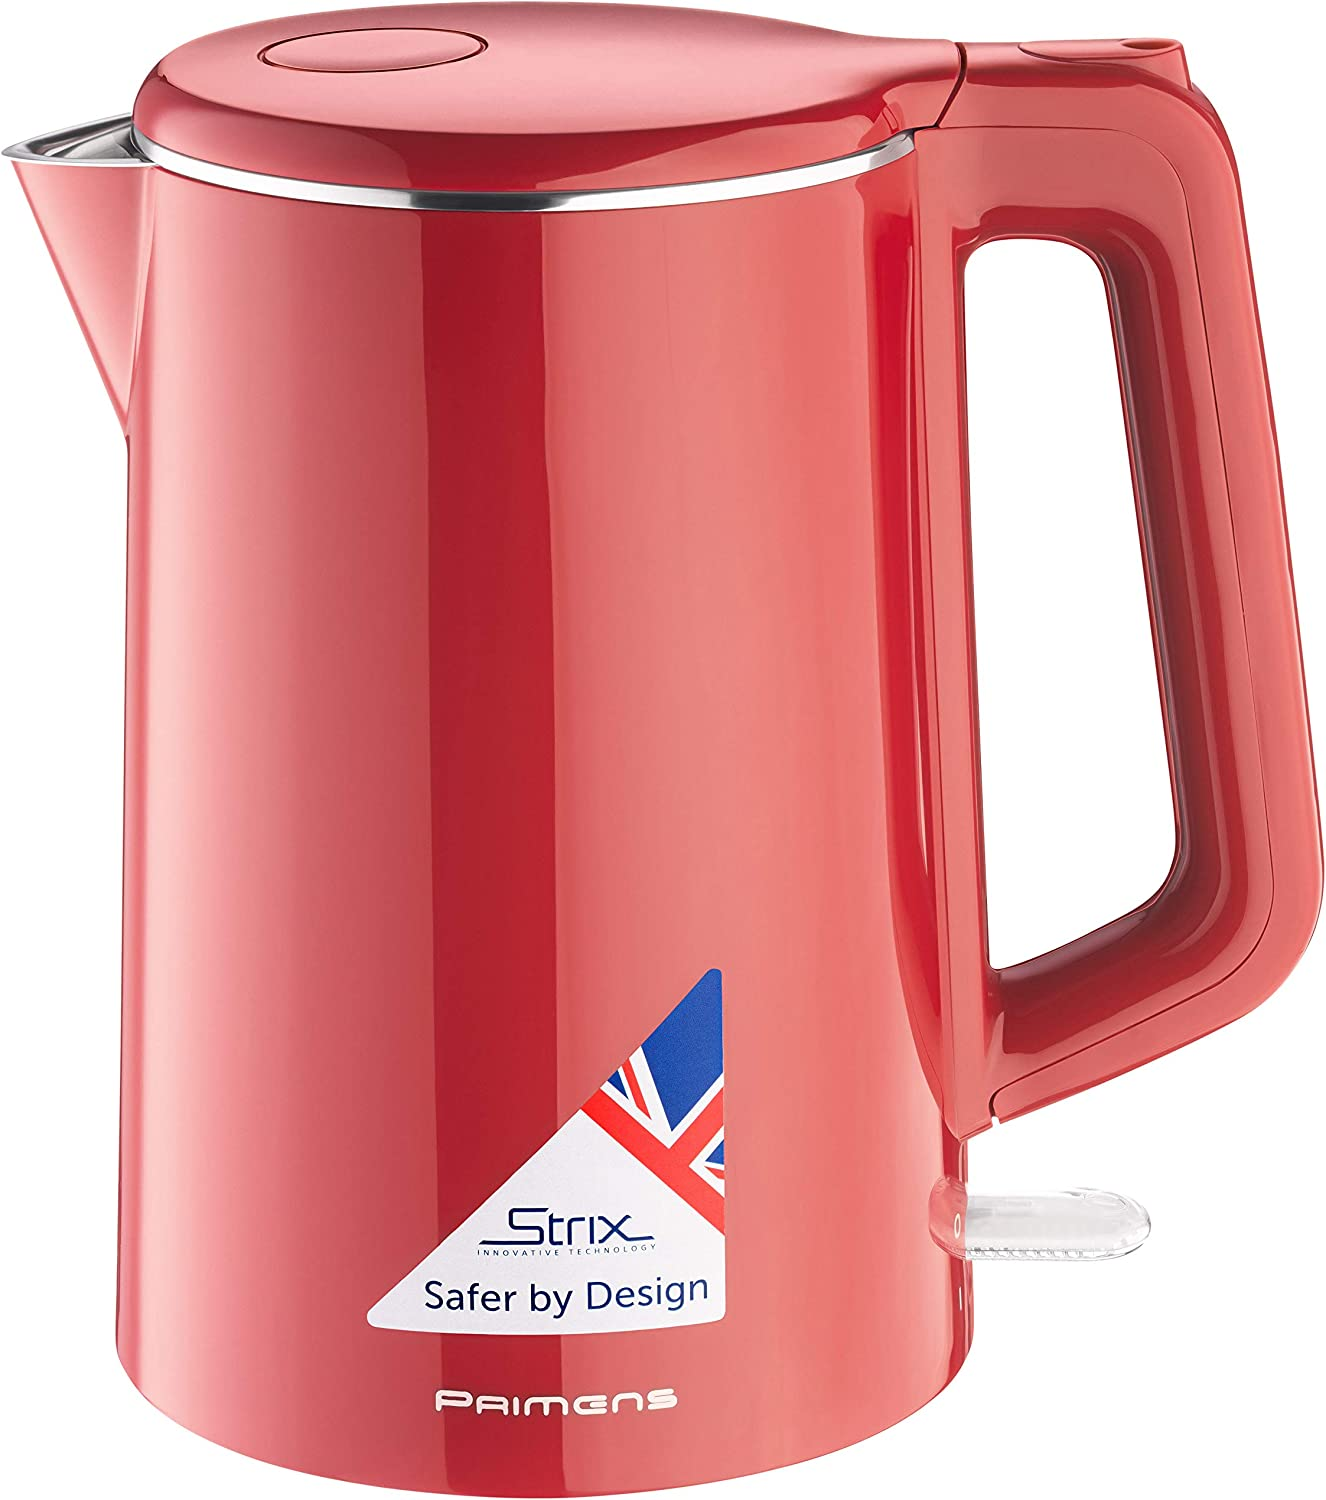 Electric Tea Kettle, Hot Water Electric Kettle 100% Stainless Steel(BPA-Free), Double Wall Cool Toch, 1.5L Water Heater/Boiler Cordless Kettle, Fast Boil 1500W, Auto Shut Off, Best Boil-Dry Protection